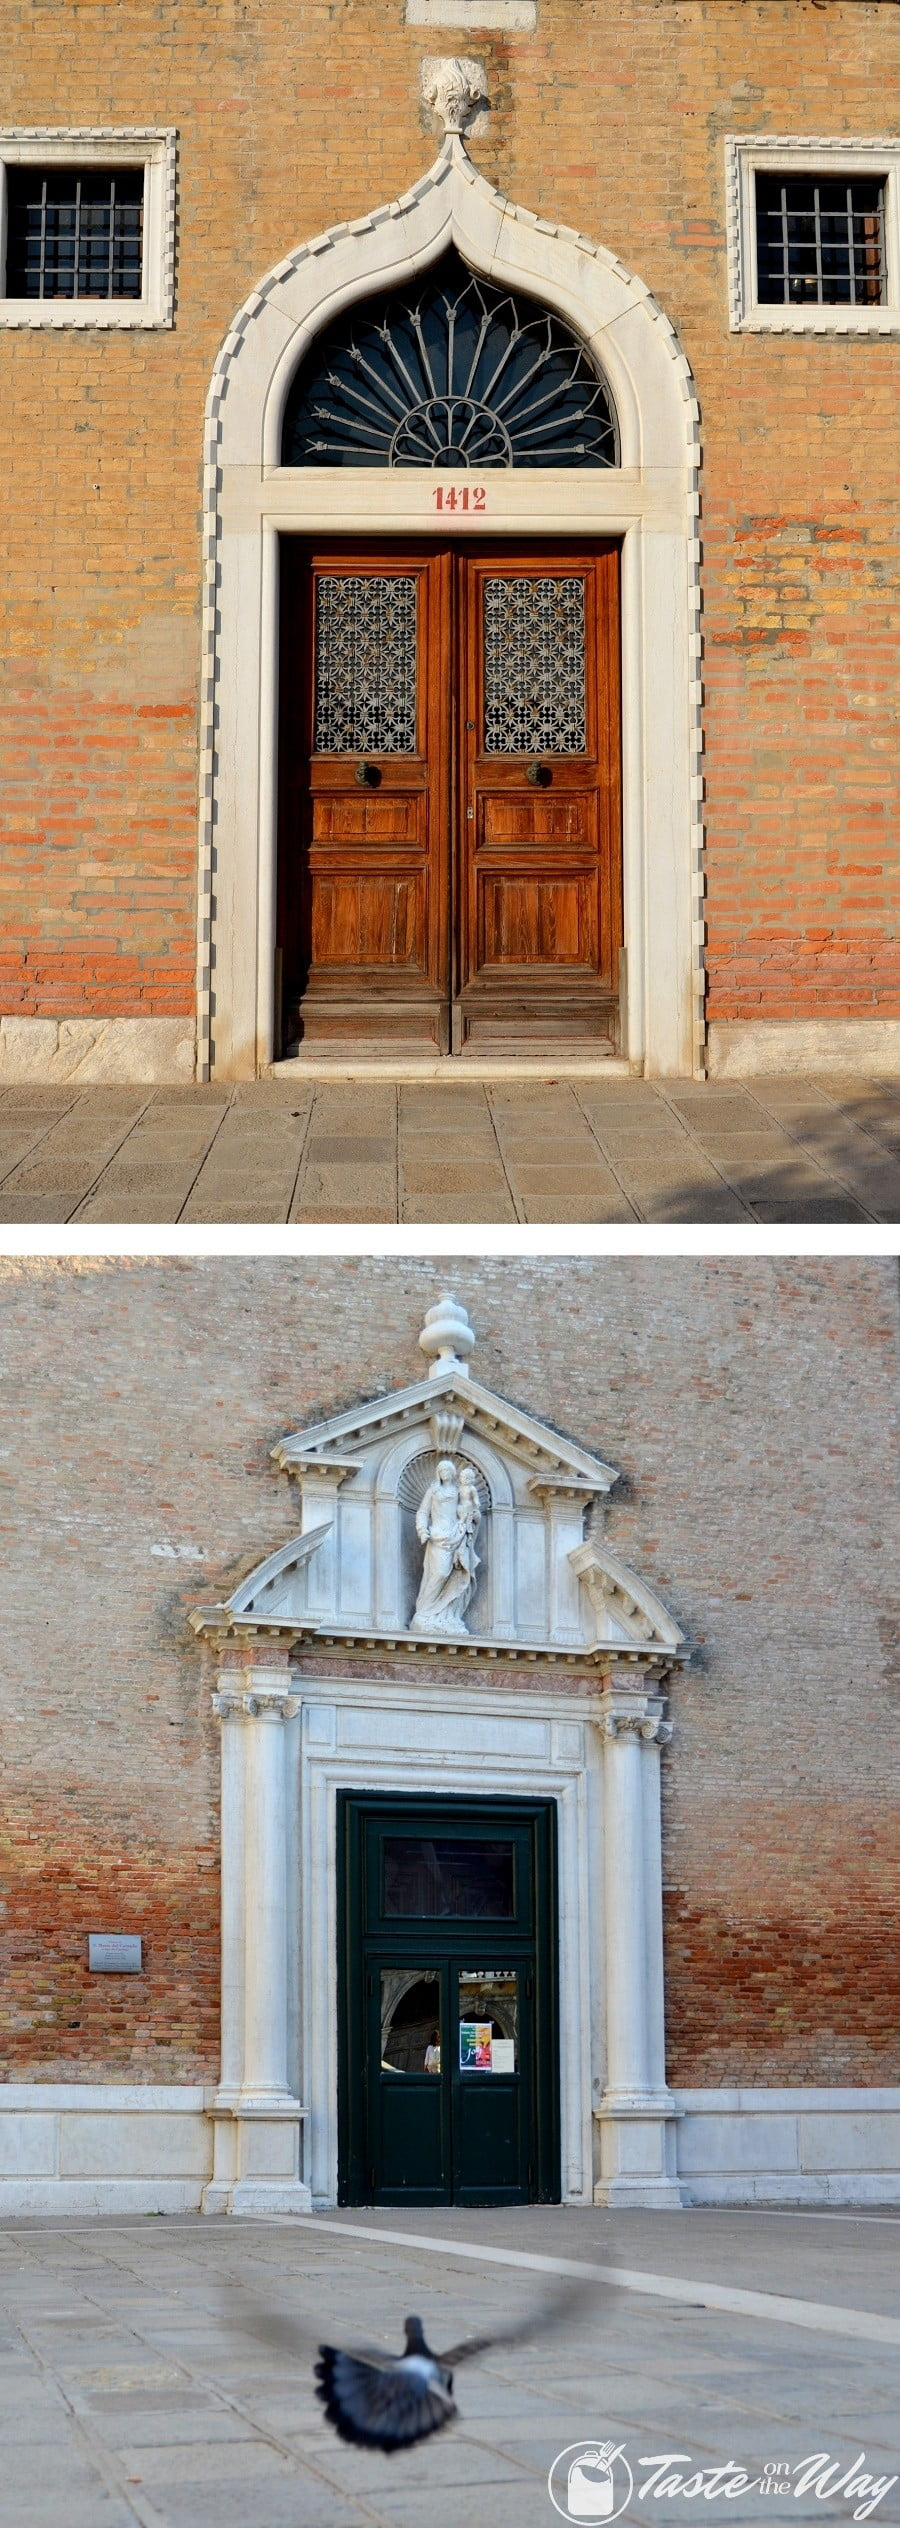 Check out these awesome pictures of architecture details in #Venice #travel #photography @tasteontheway